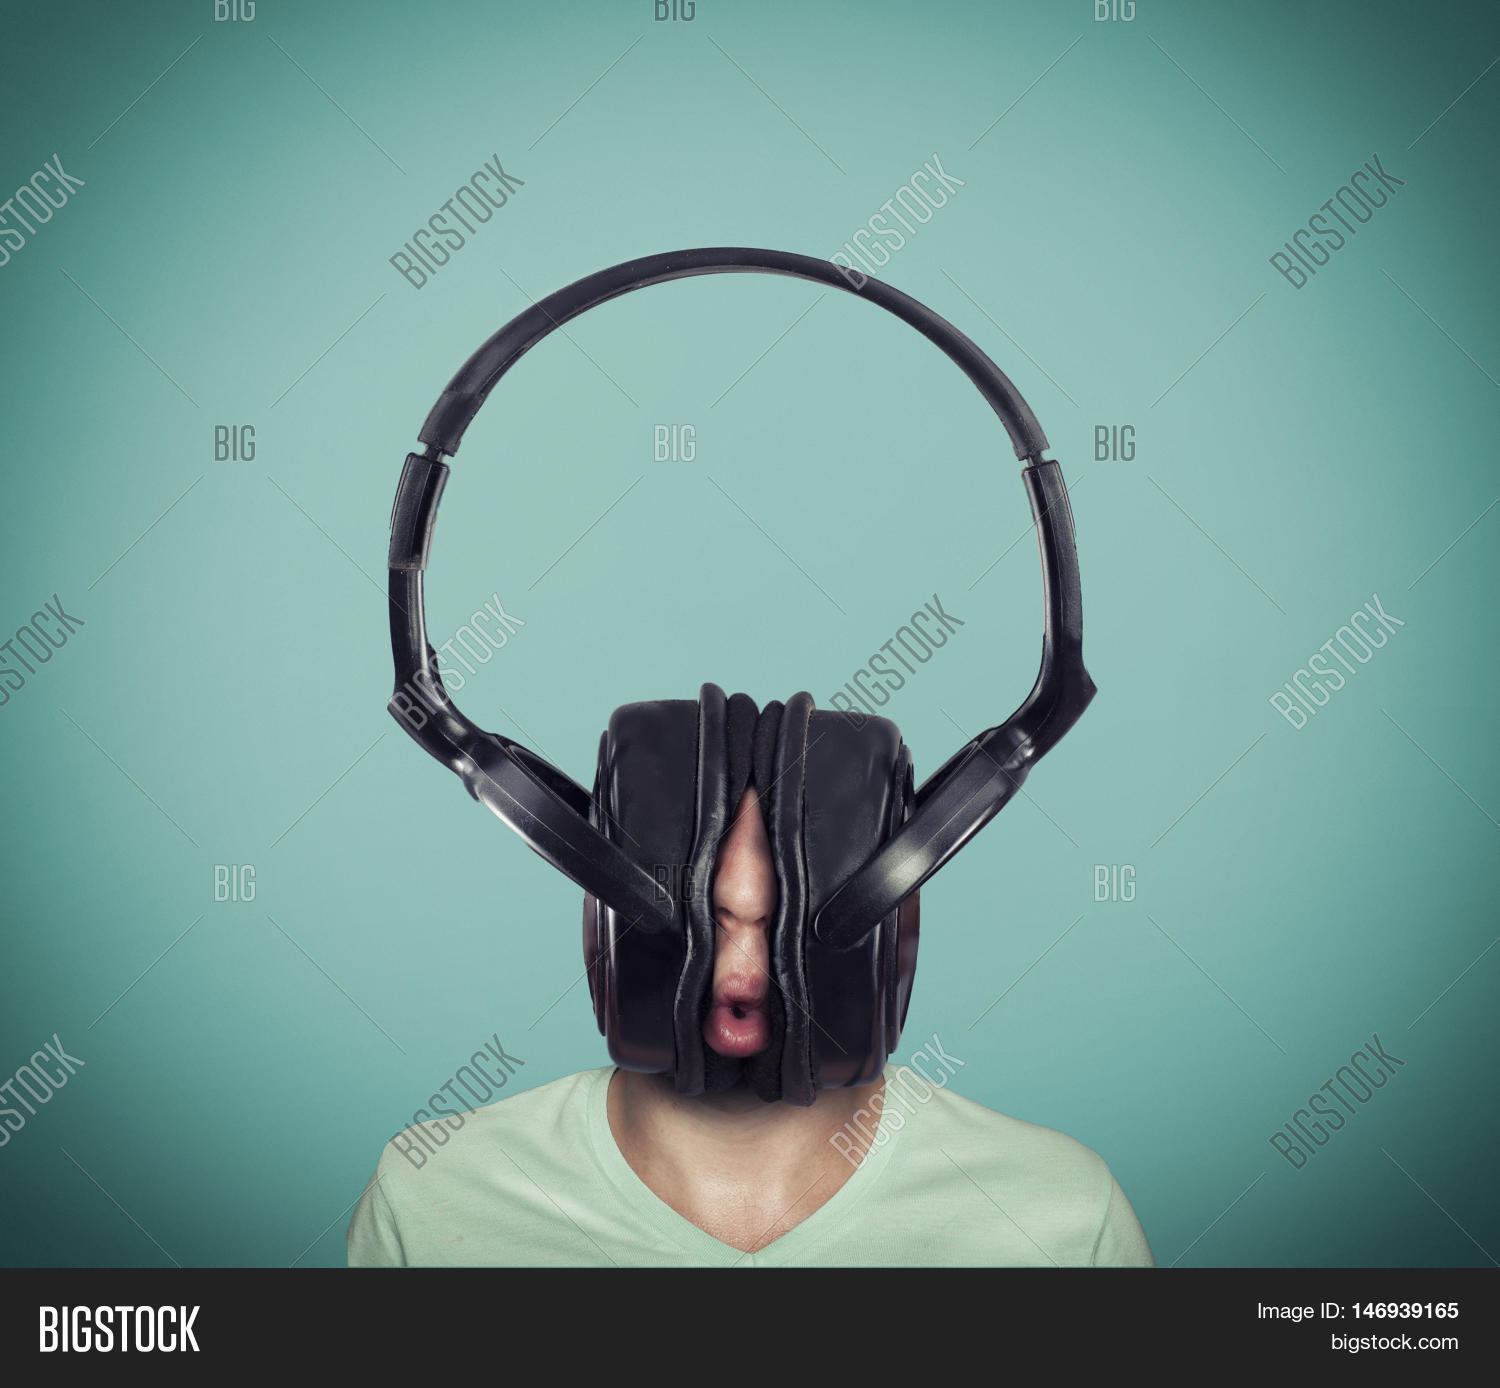 Image result for man with big headphones